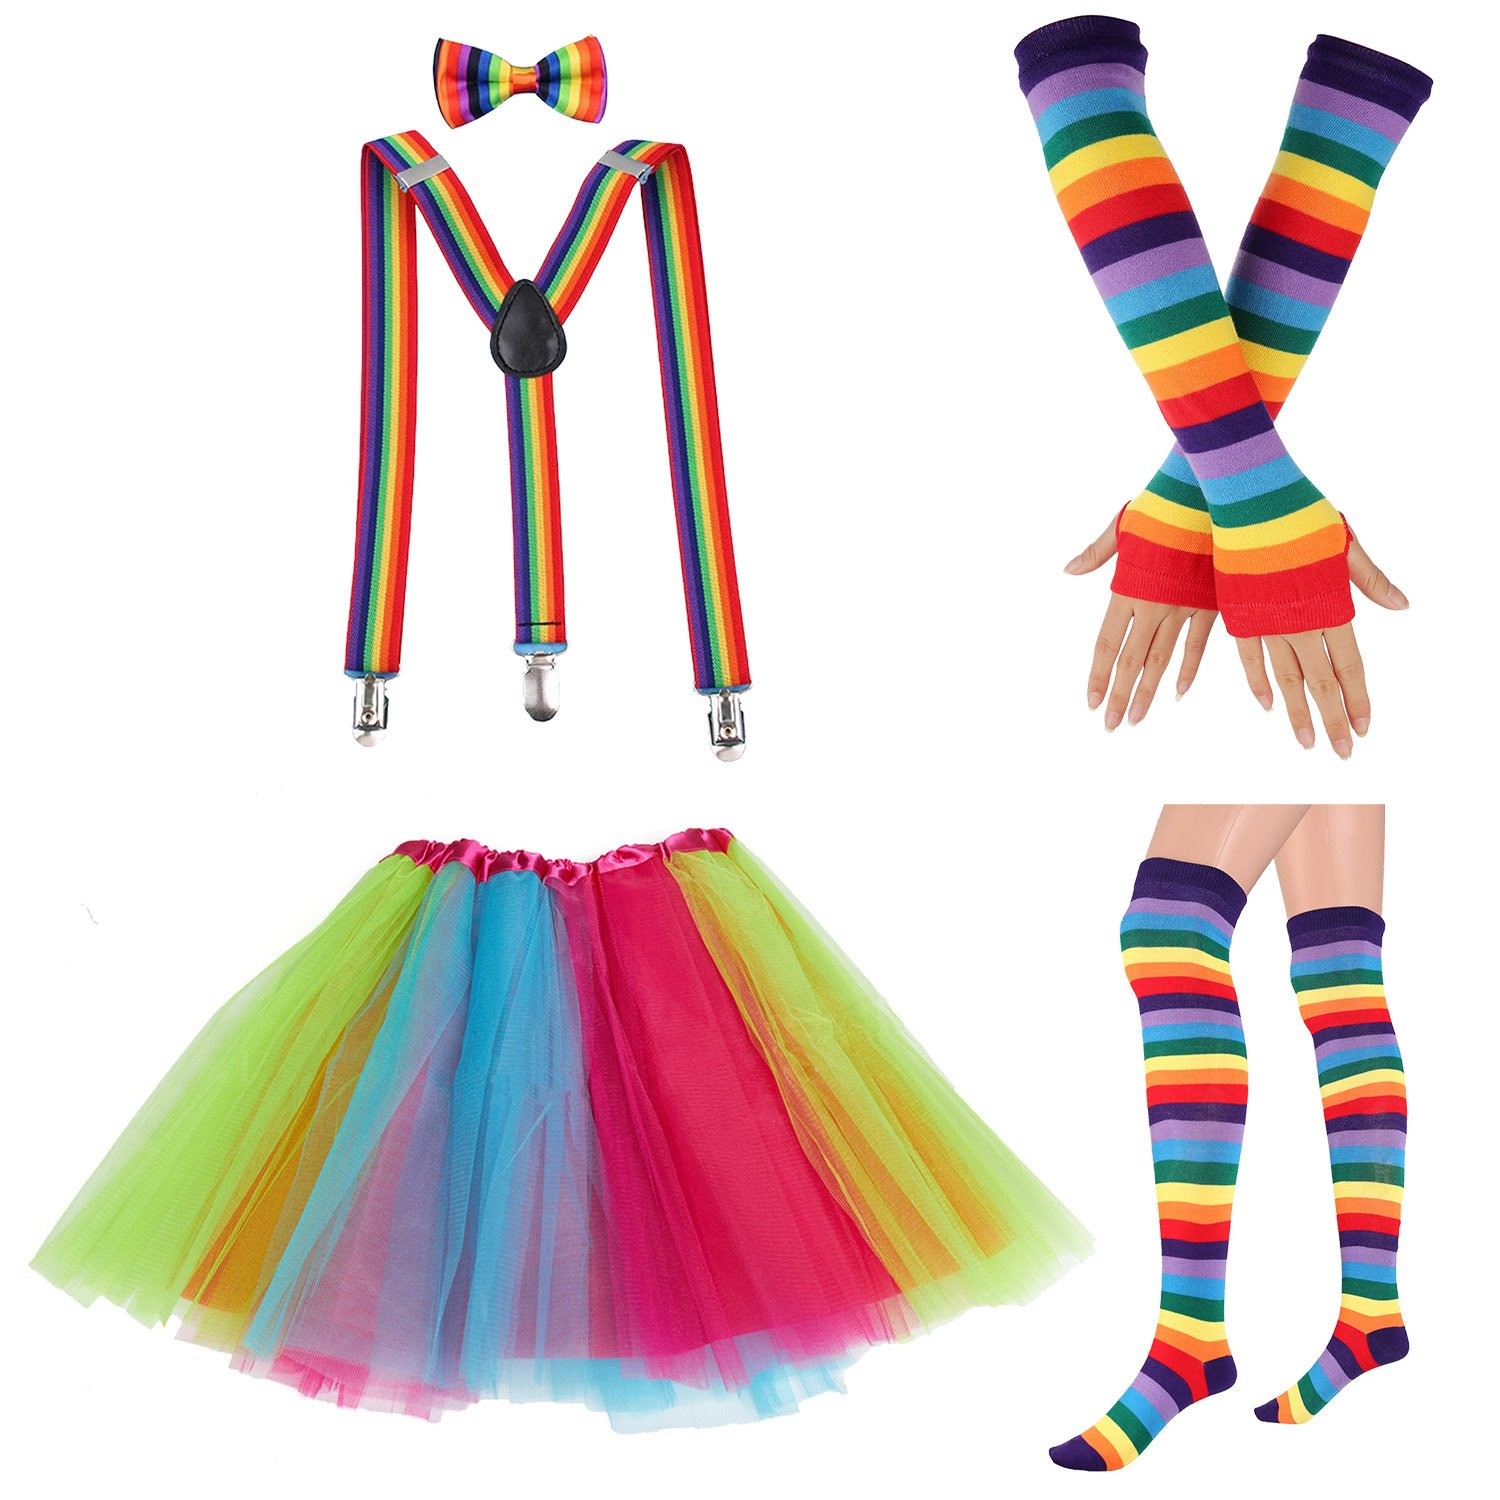 80s Womens Accessory,Tutu Skirt,Unicorn Headband, Unicorn Wigs Rainbow Long Gloves Socks,Rainbow Adjustable Suspenders w/Bow-tie (2-C)